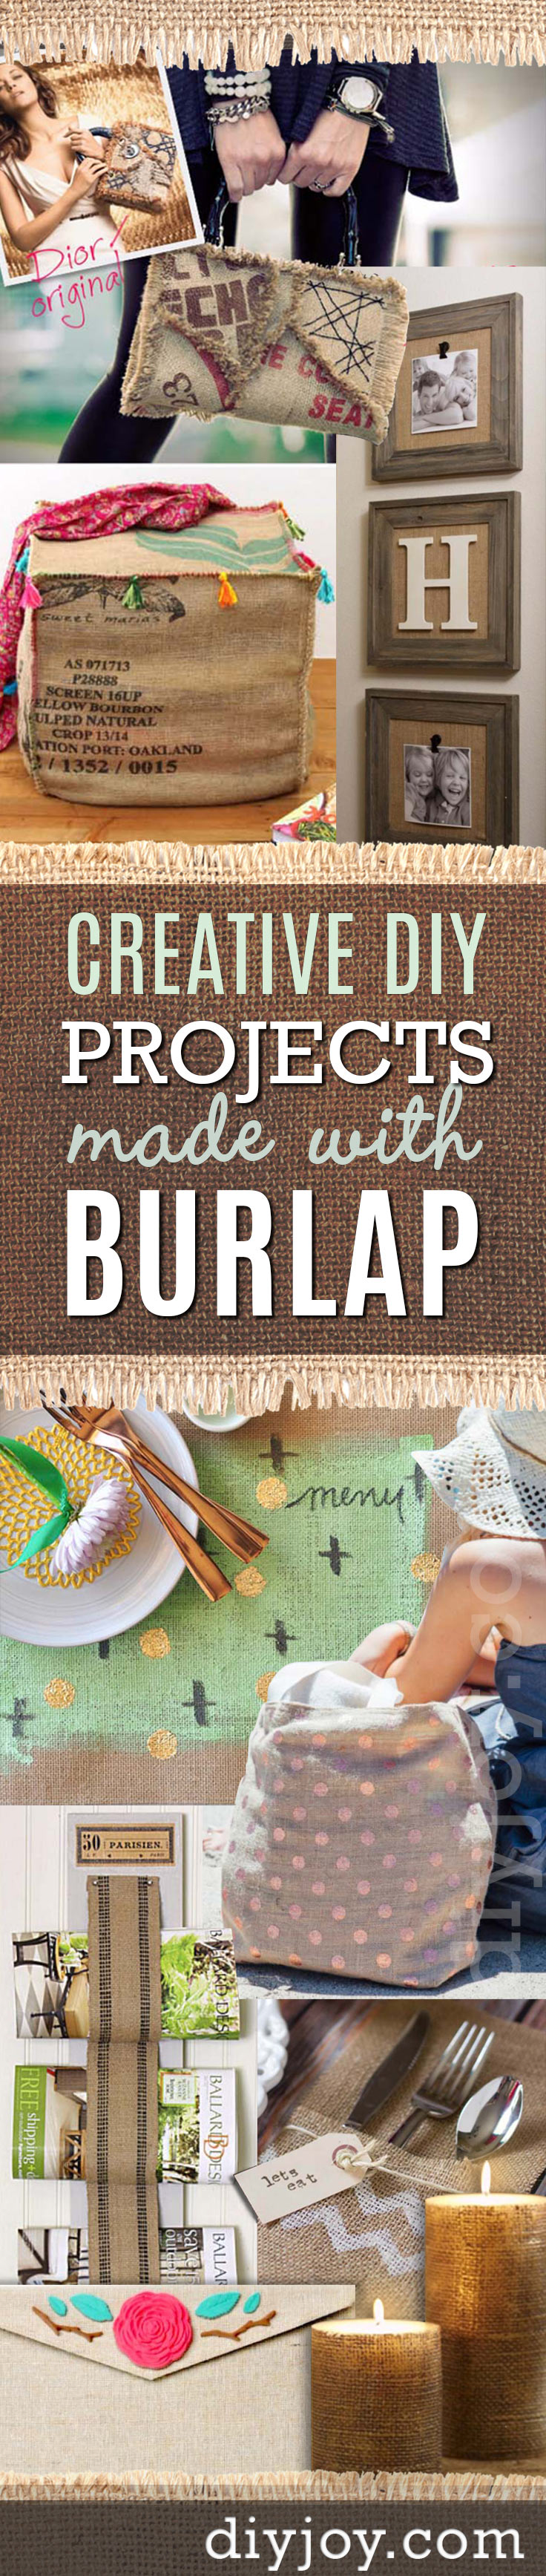 DIY Projects with Burlap and Creative Burlap Crafts for Home Decor, Gifts -christmas decor, rustic farmhouse and room decorating ideas